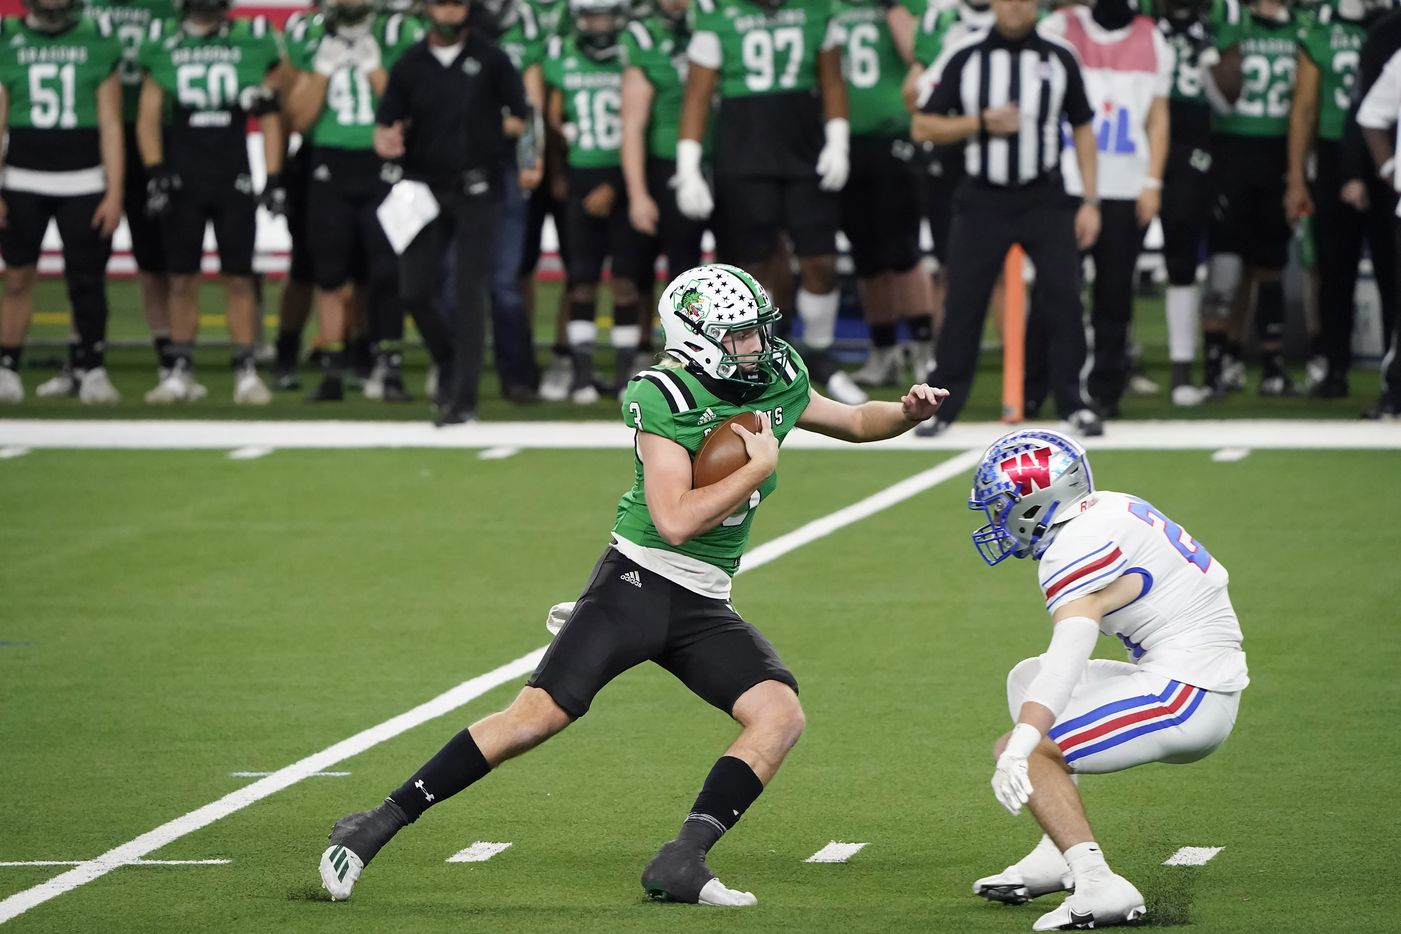 Southlake Carroll quarterback Quinn Ewers (3) tries to get past Austin Westlake defensive back Patrick Churchill (24) during the second quarter of the Class 6A Division I state football championship game at AT&T Stadium on Saturday, Jan. 16, 2021, in Arlington, Texas.